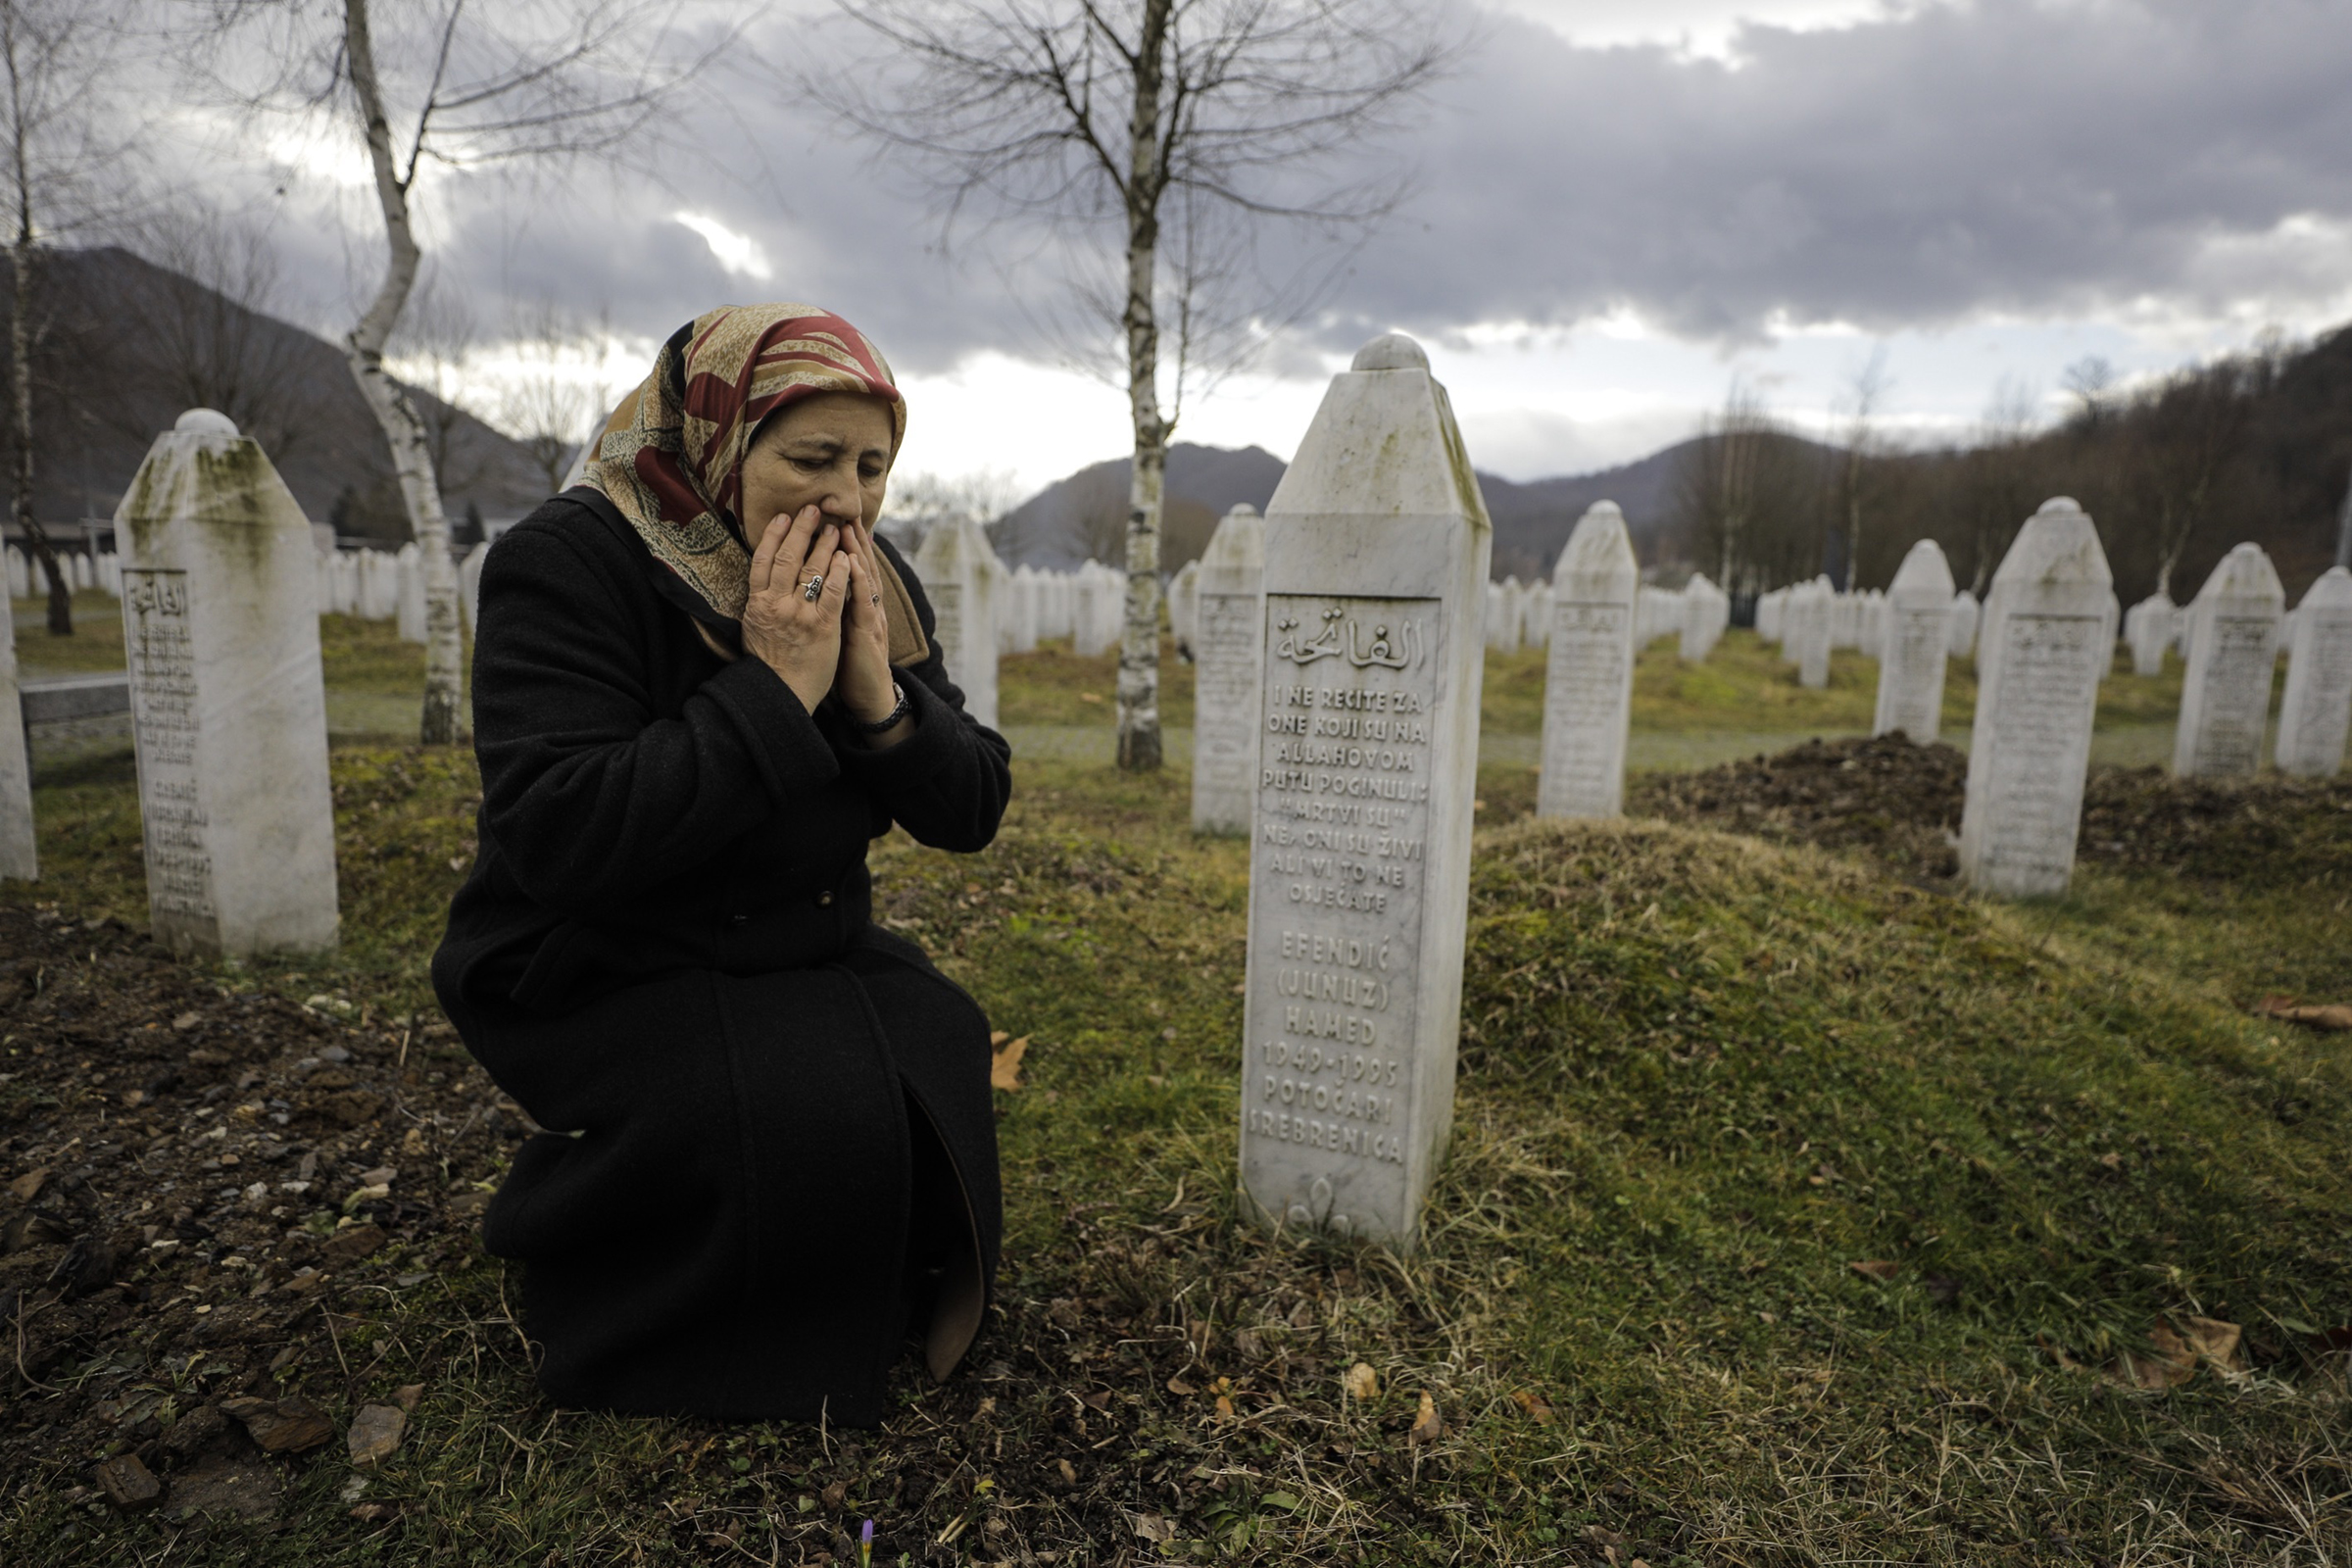 Mother of a Srebrenica victim Fazila Efendic, the mother of a Srebrenica victim visits the graves of her husband and son in Srebrenica, Bosnia, on Feb. 15, 2020. They lost their lives in the Srebrenica genocide, which started on July 11, 1995.